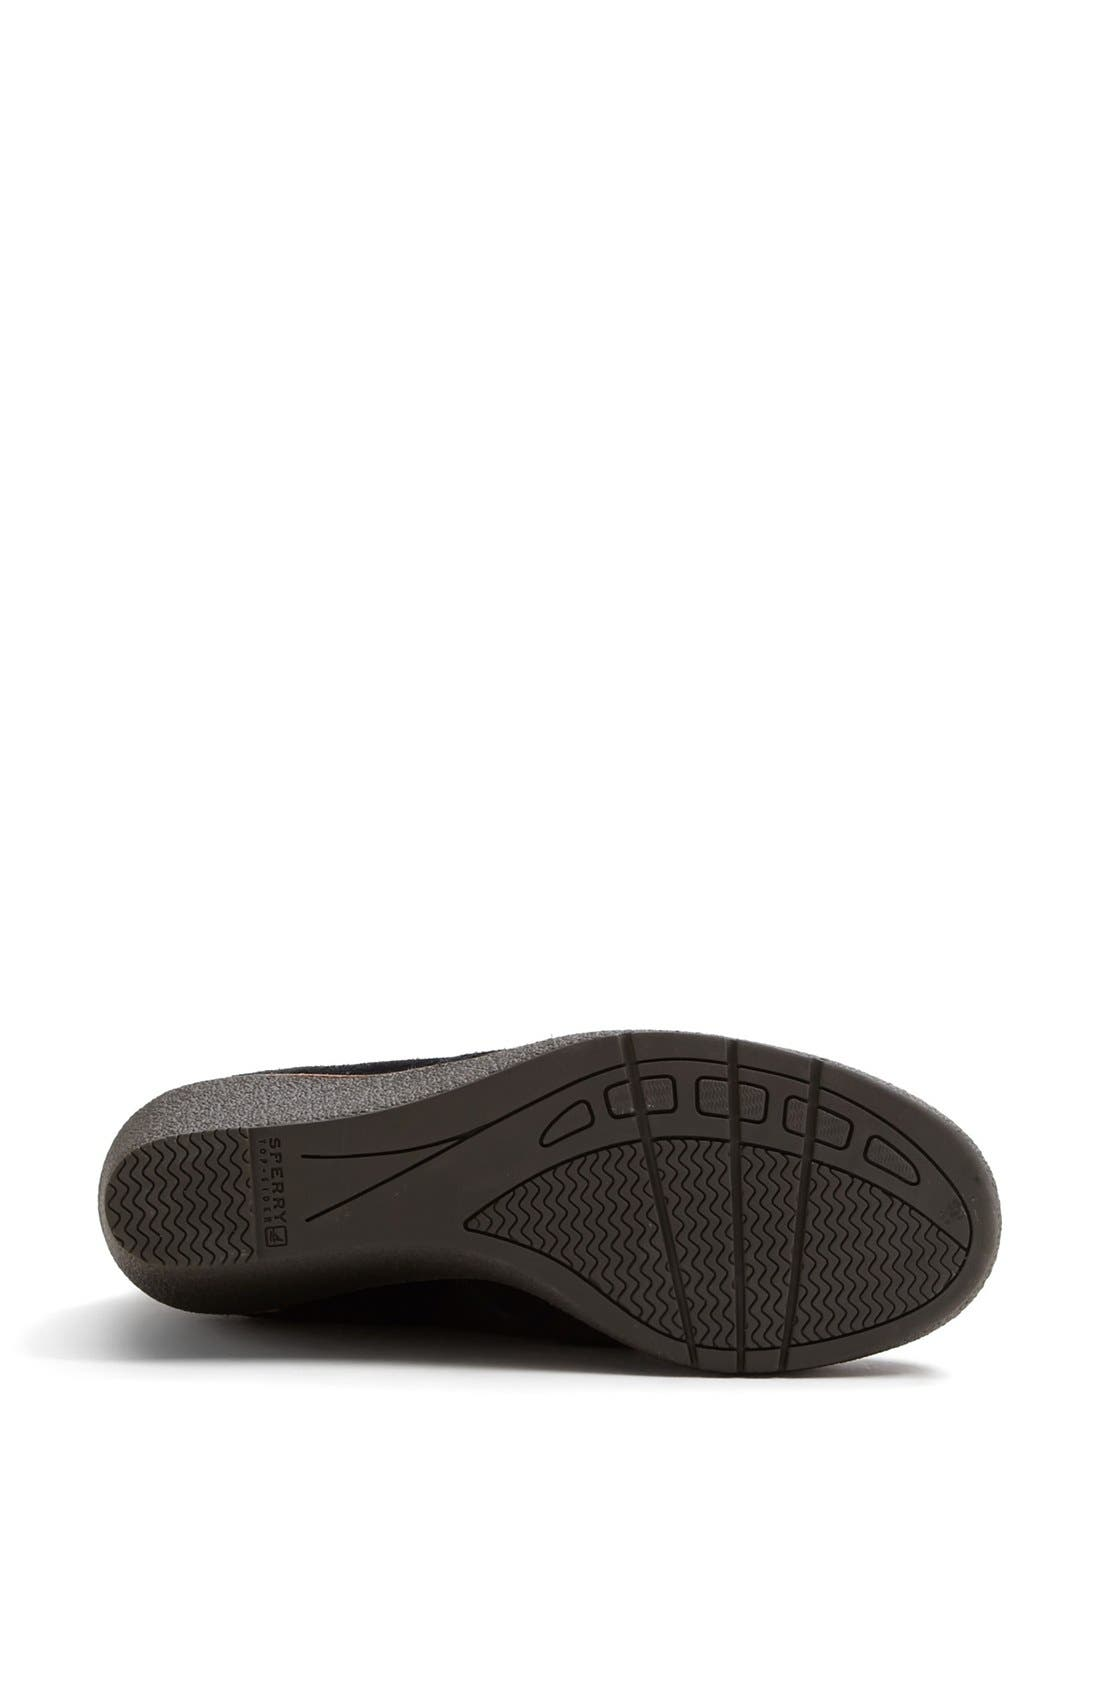 Top Sider<sup>®</sup> 'Harlow' Bootie,                             Alternate thumbnail 3, color,                             001